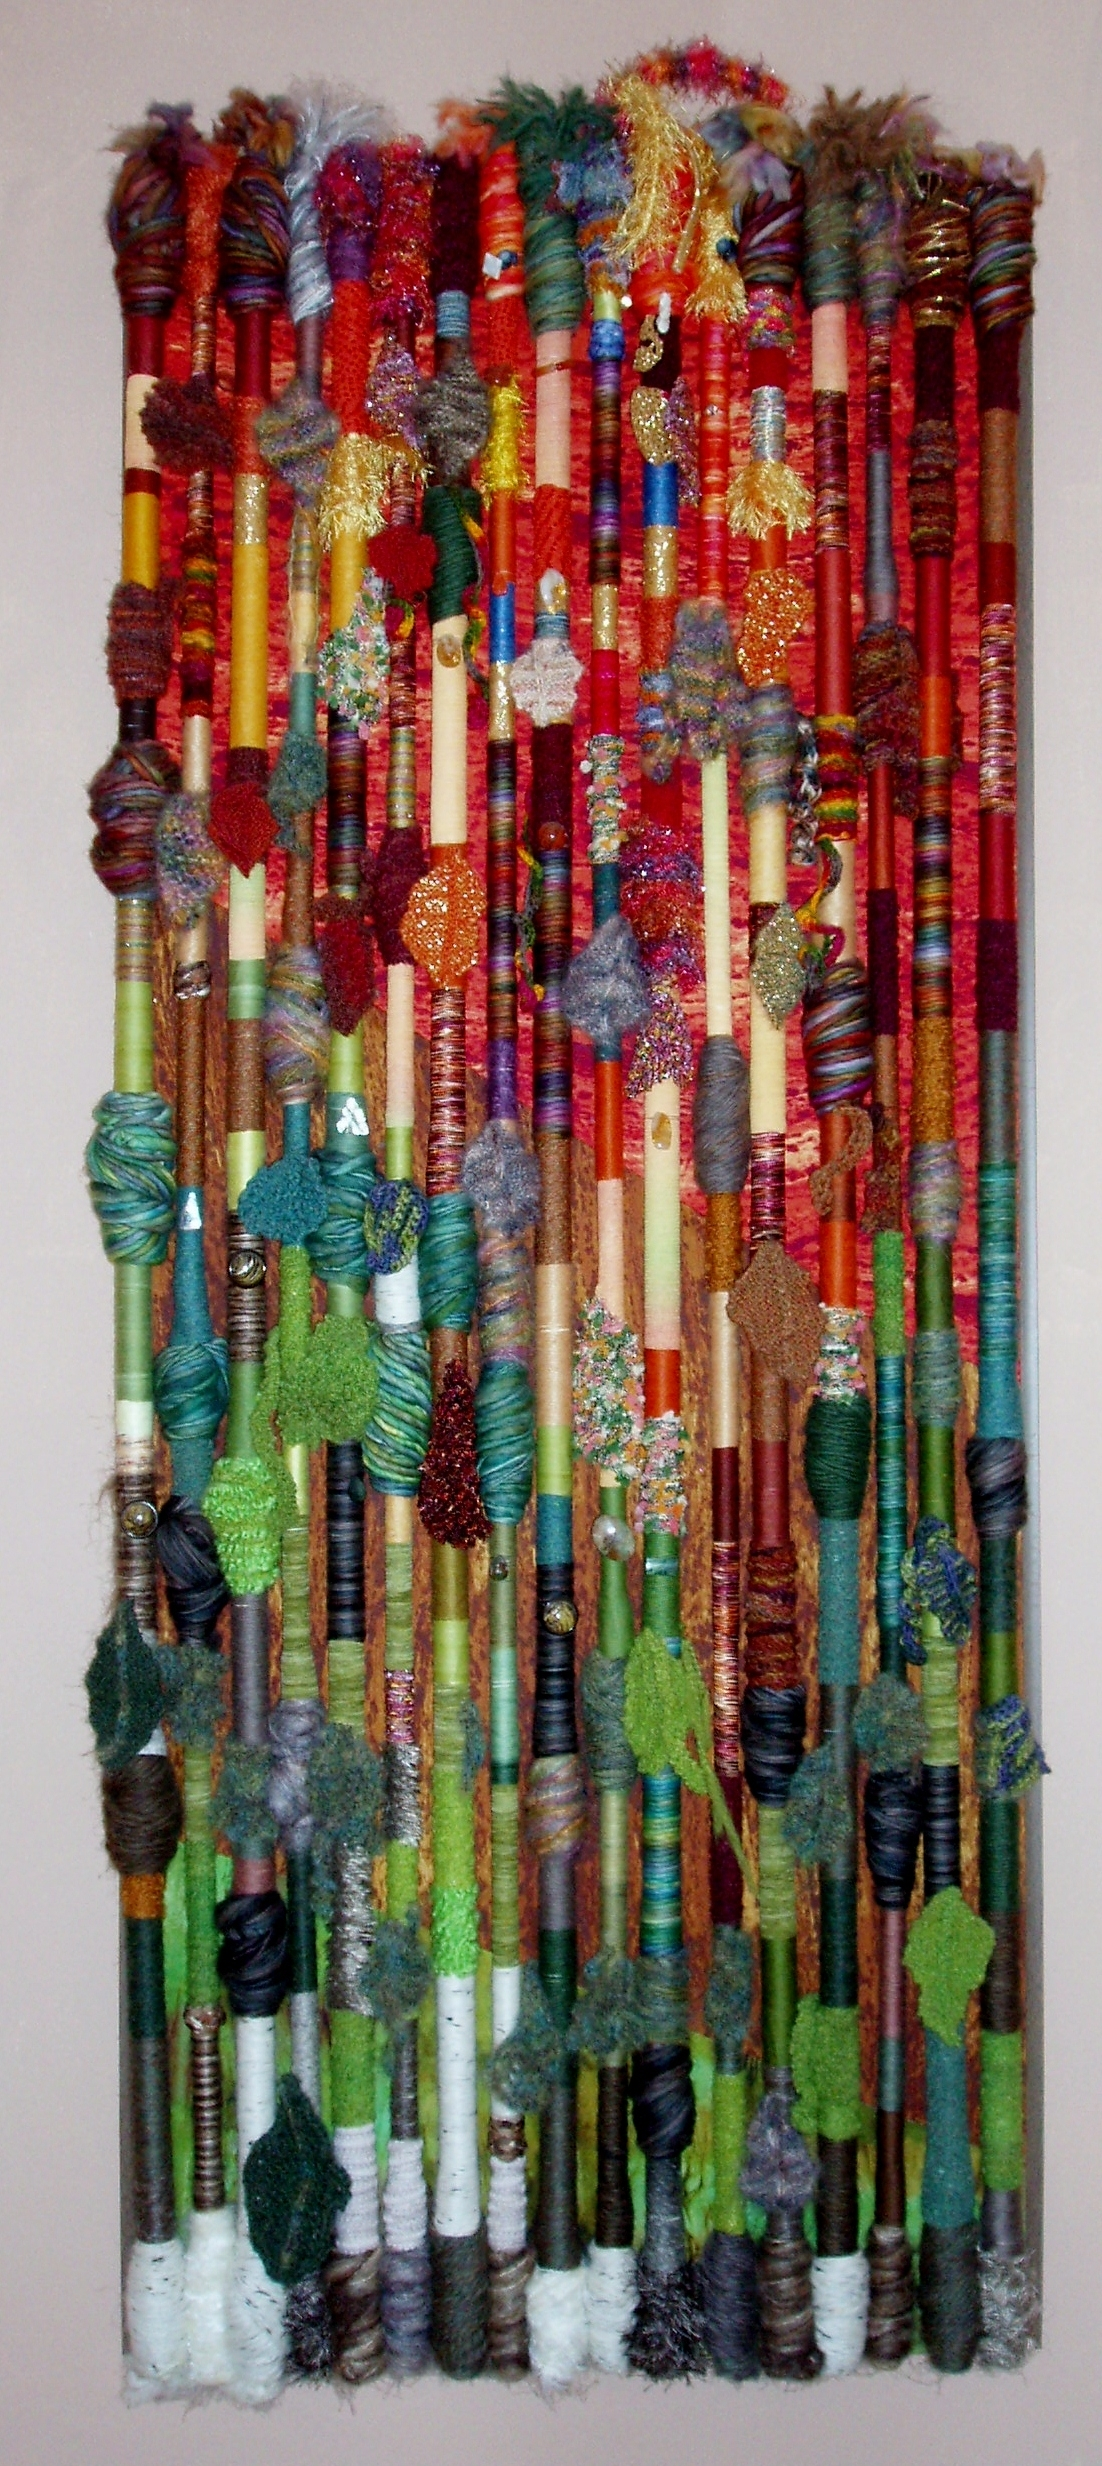 40 Bold And Modern Textile Wall Hangings | Panfan Site Throughout Current Fabric For Wall Art Hangings (Gallery 7 of 15)